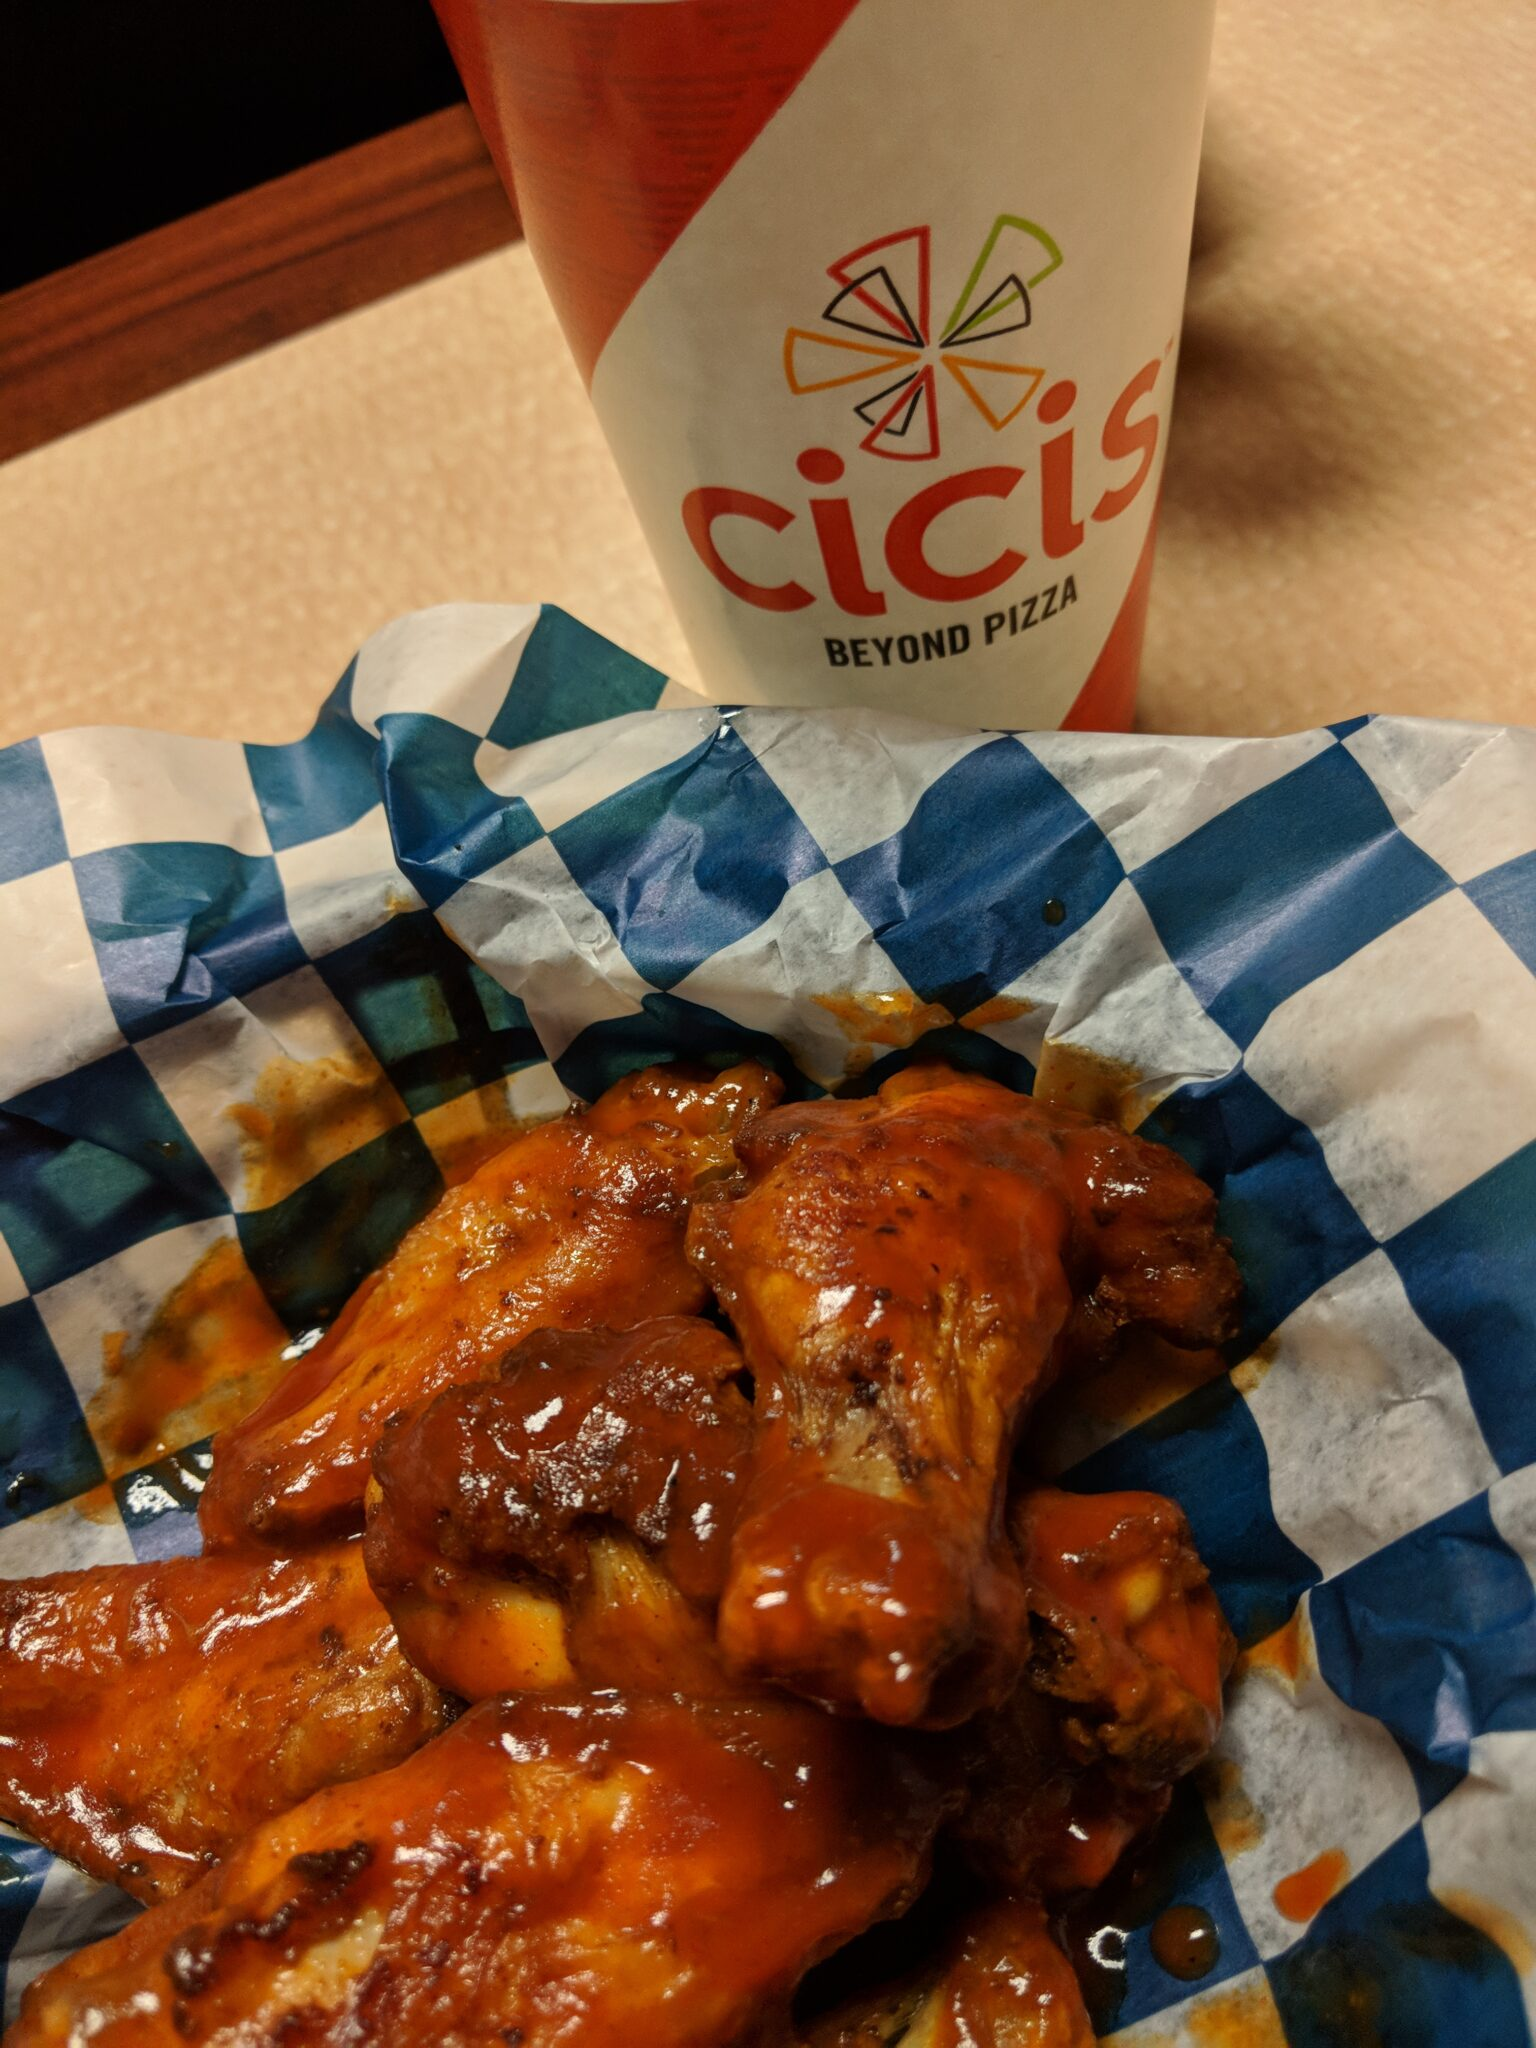 These gluten free wings at the Branson Cici's were tasty.